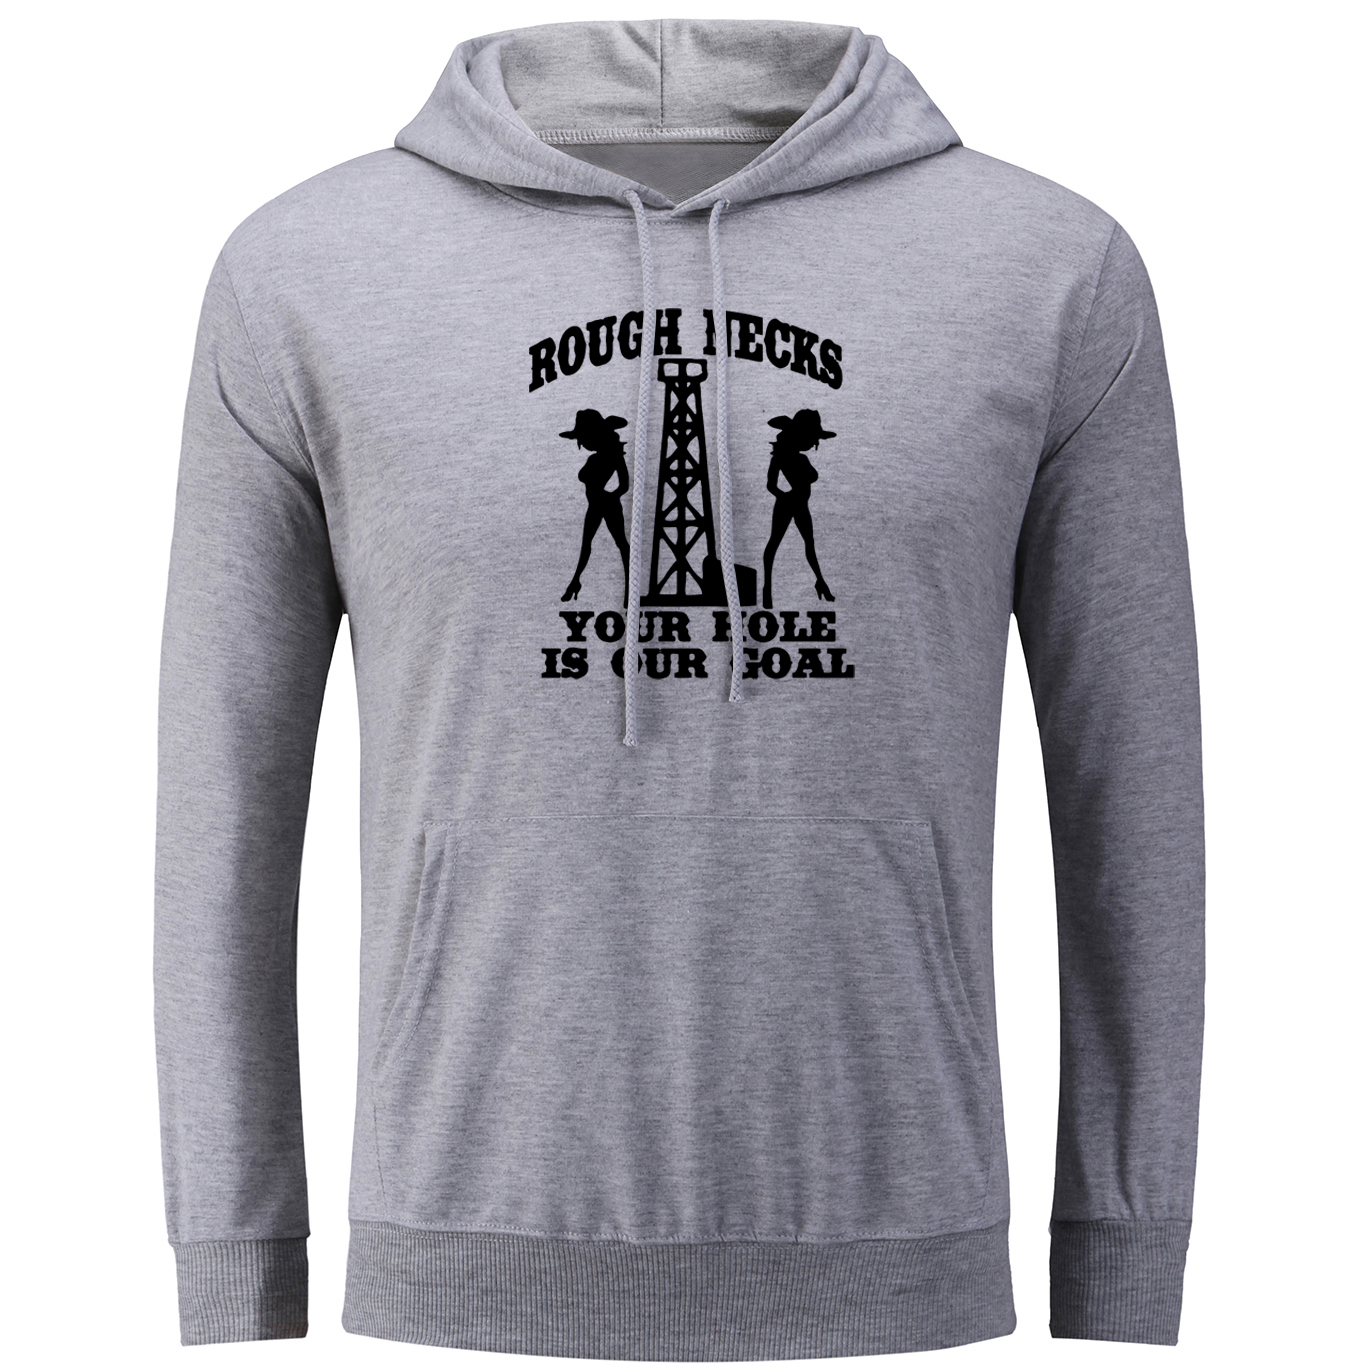 Rough Necks Your Hole is our Goal Design Hoodie Women Lady Casual Unisex Sweatshirt Autumn Early Winter Hooded Tops Streetwear